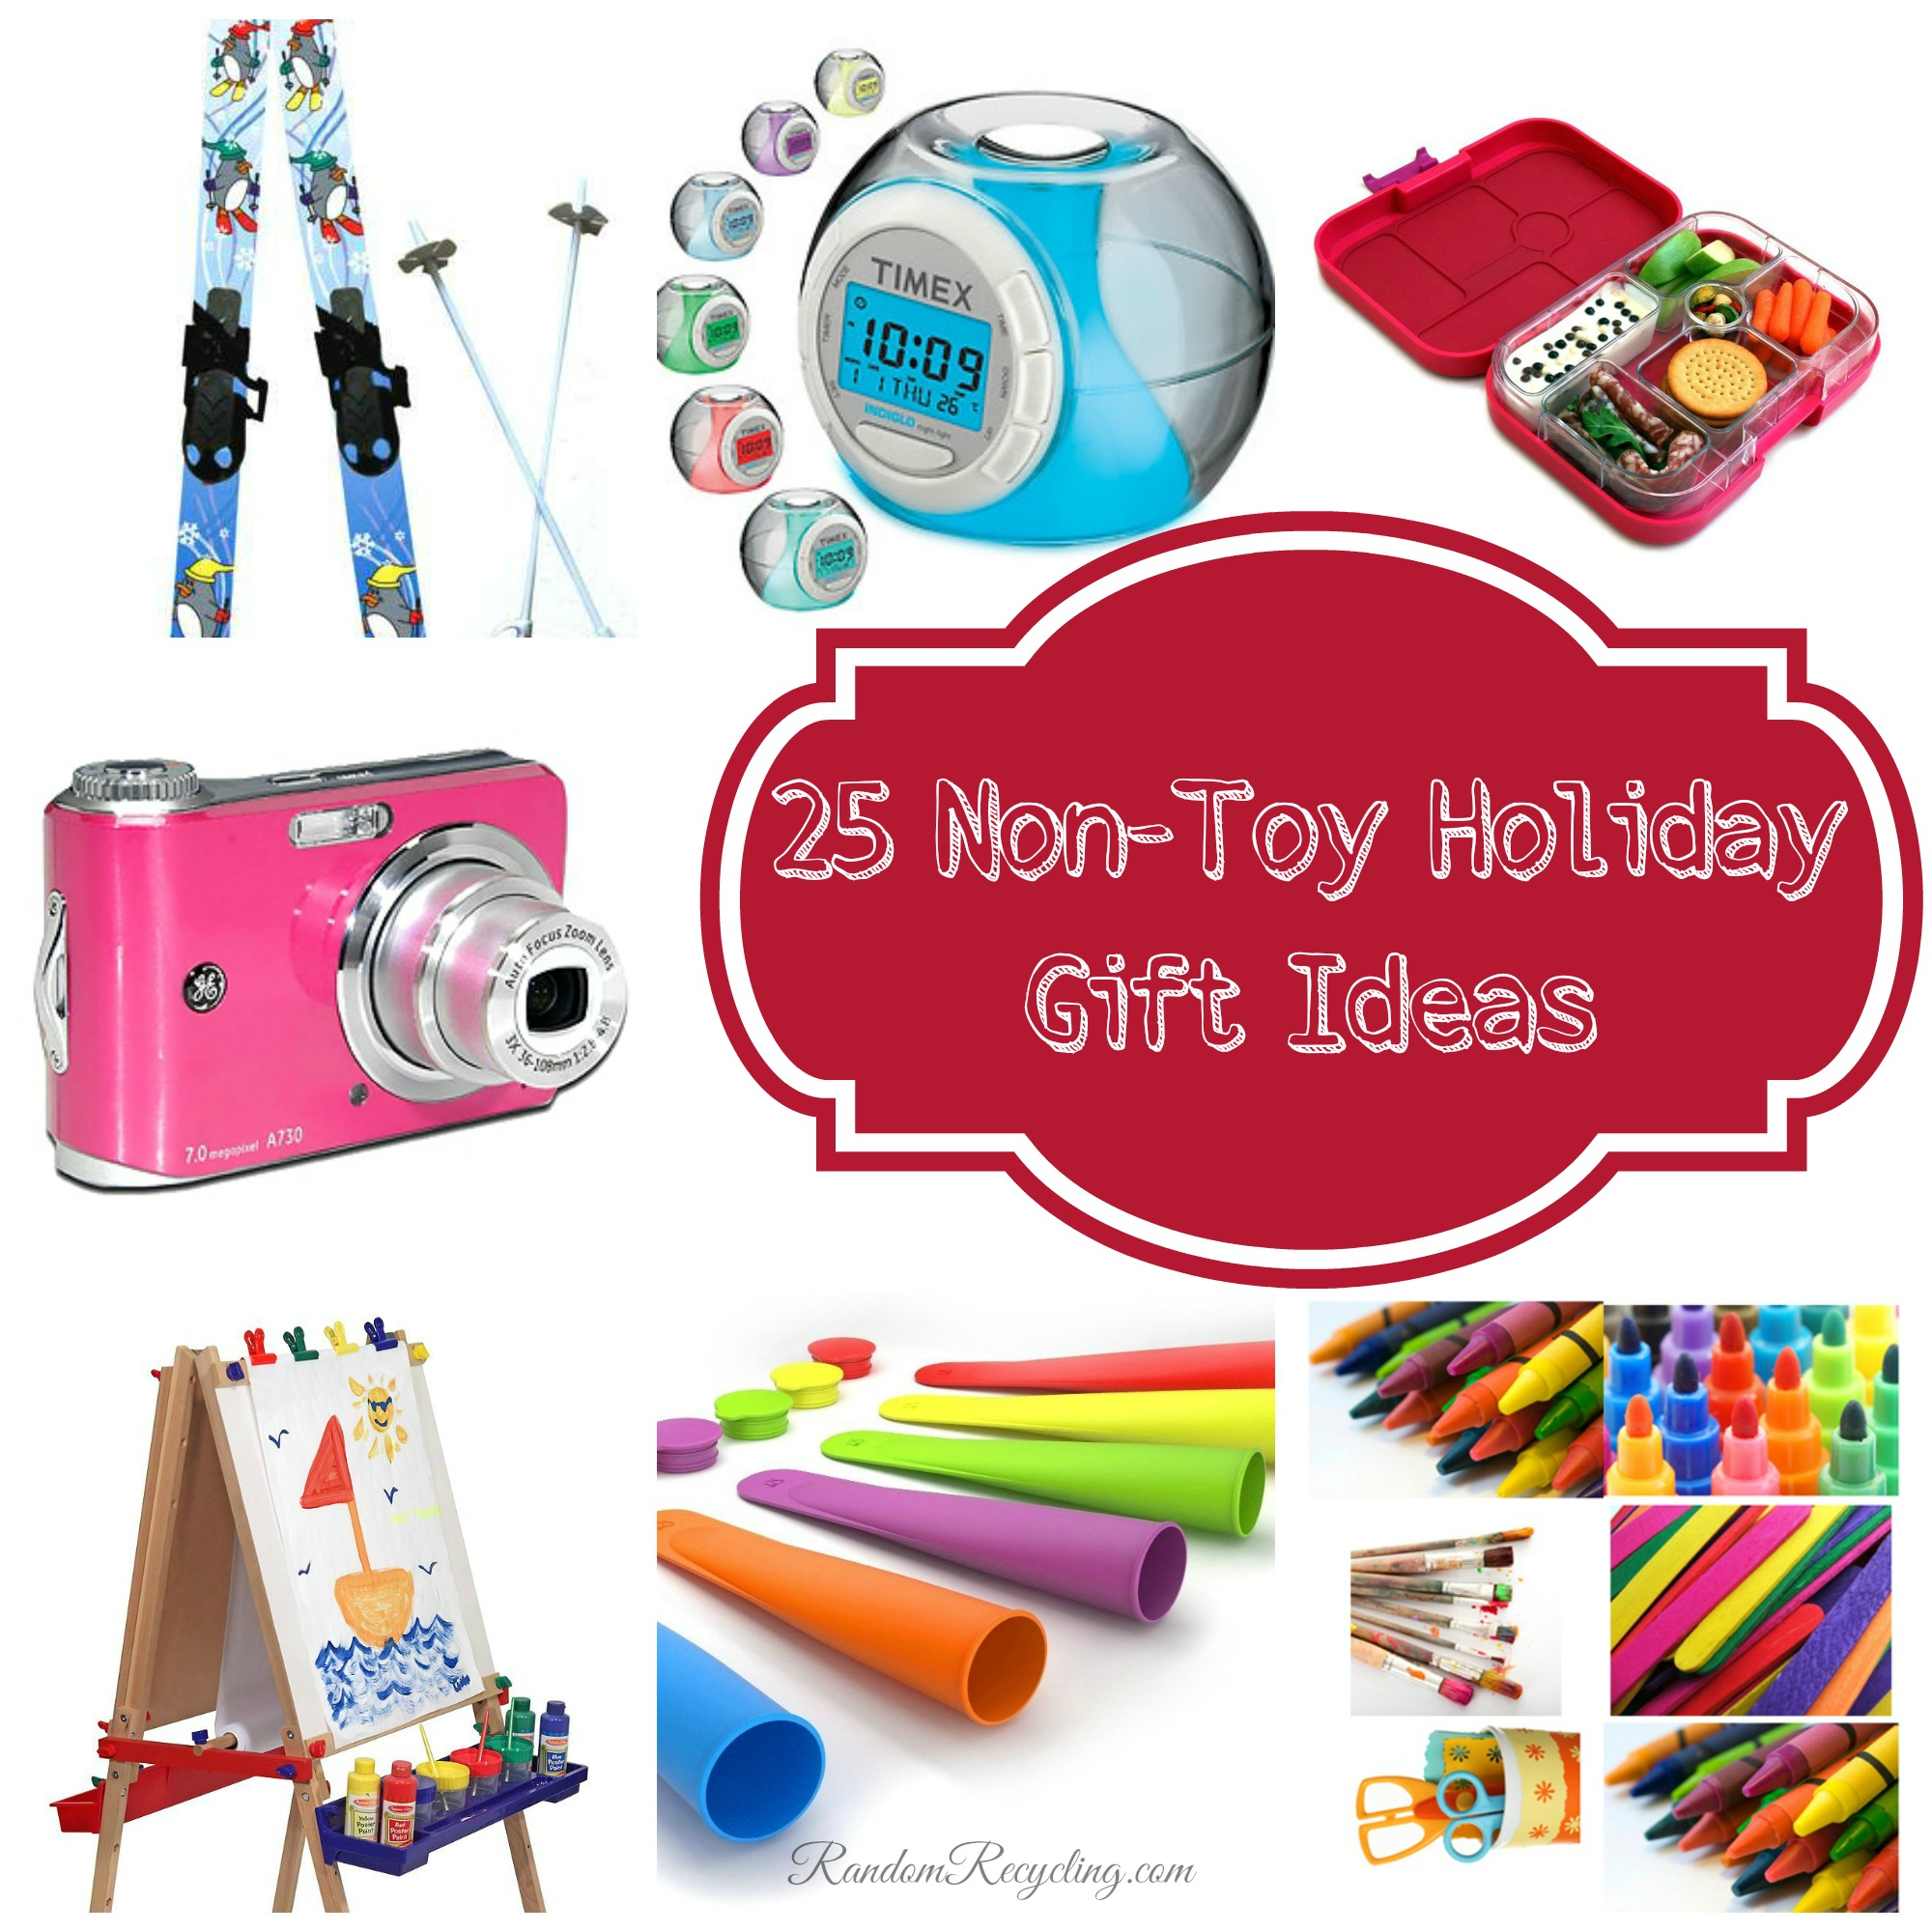 25 Non-Toy Gift Ideas for the Holidays